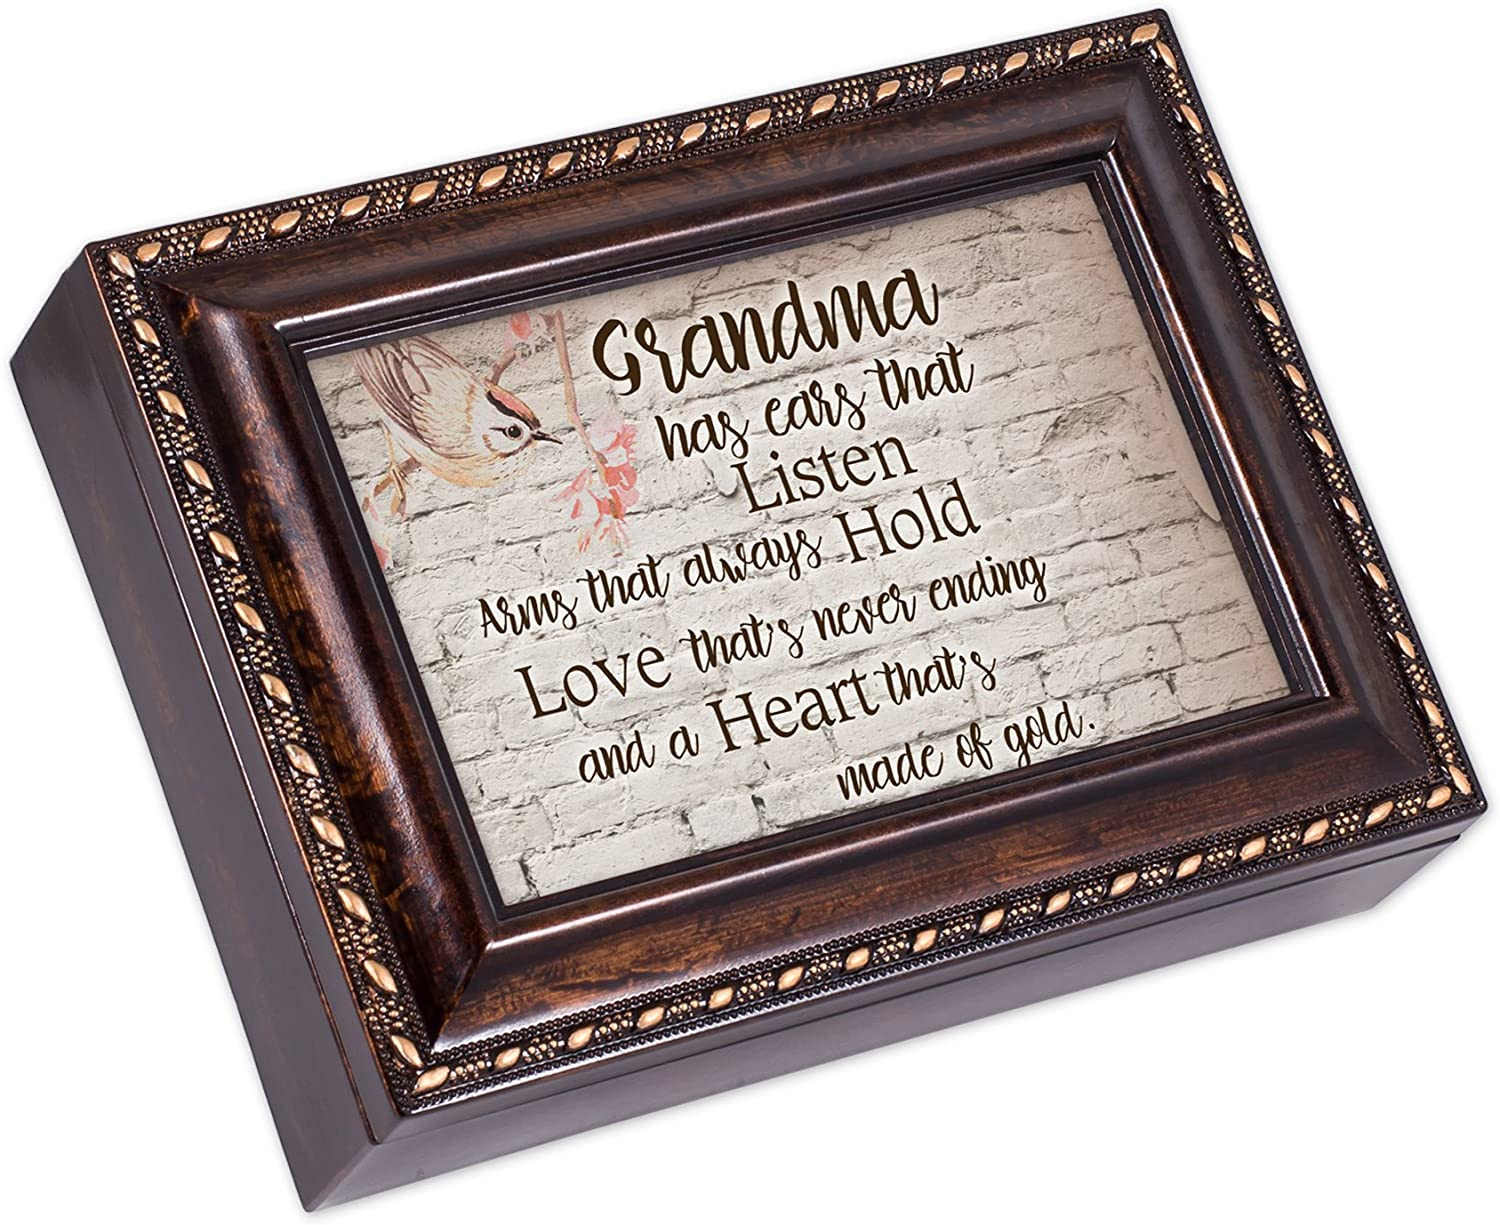 Cottage Garden Grandmas Listen Hold and Love Burlwood Finish Jewelry Music Box Plays Canon in D